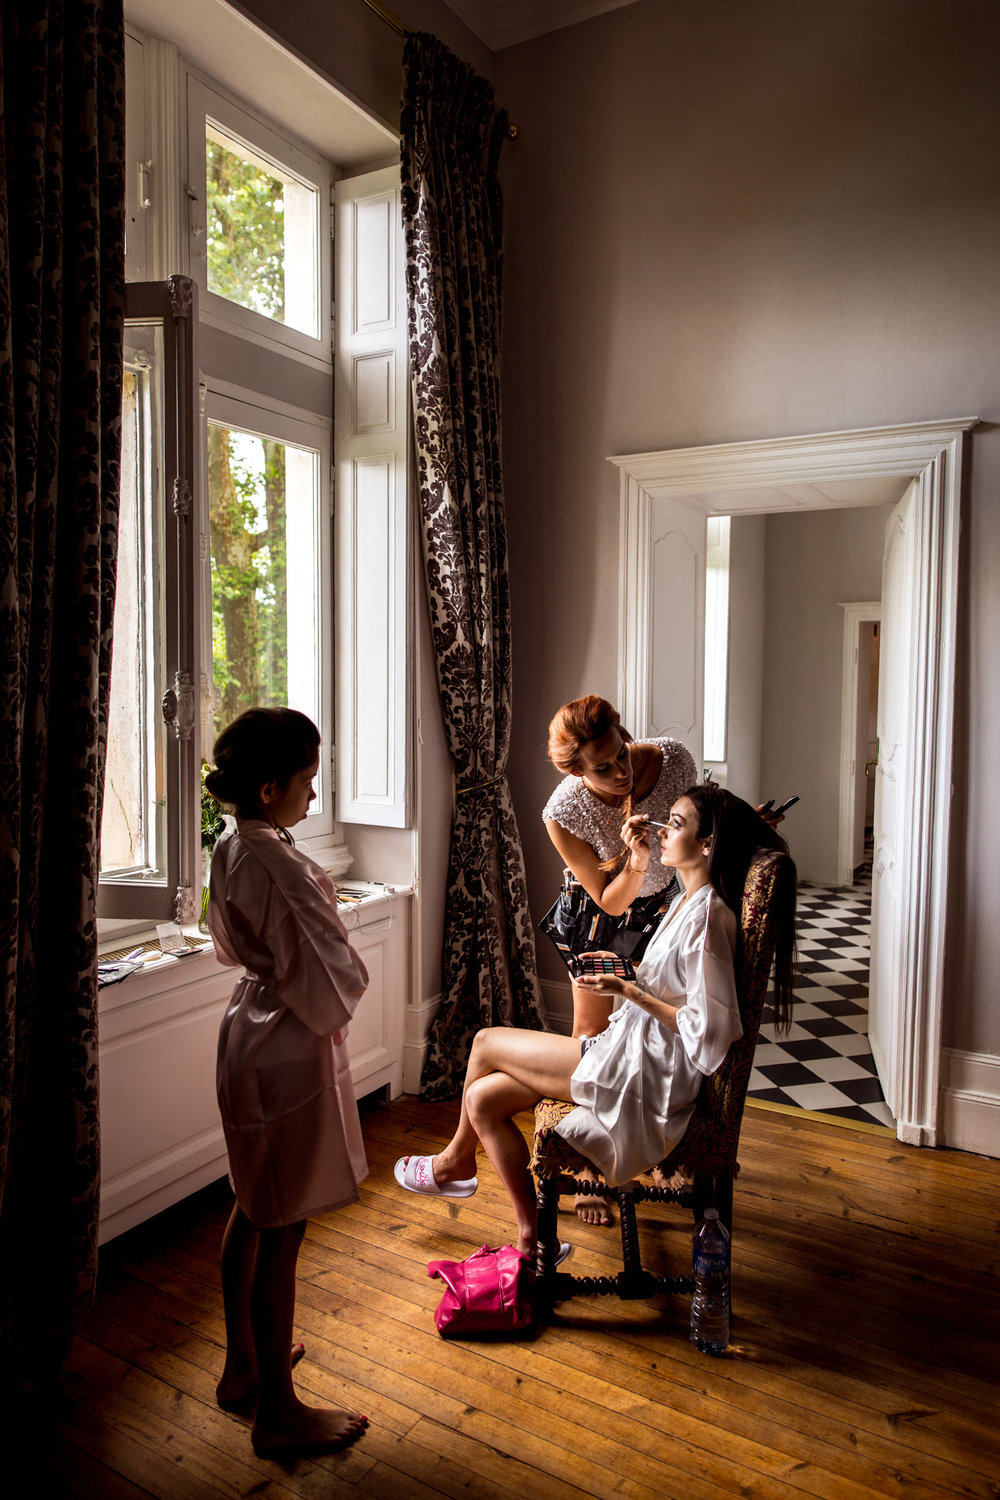 Uk Wedding photographers working at chateau de lisse in gascony 008.jpg